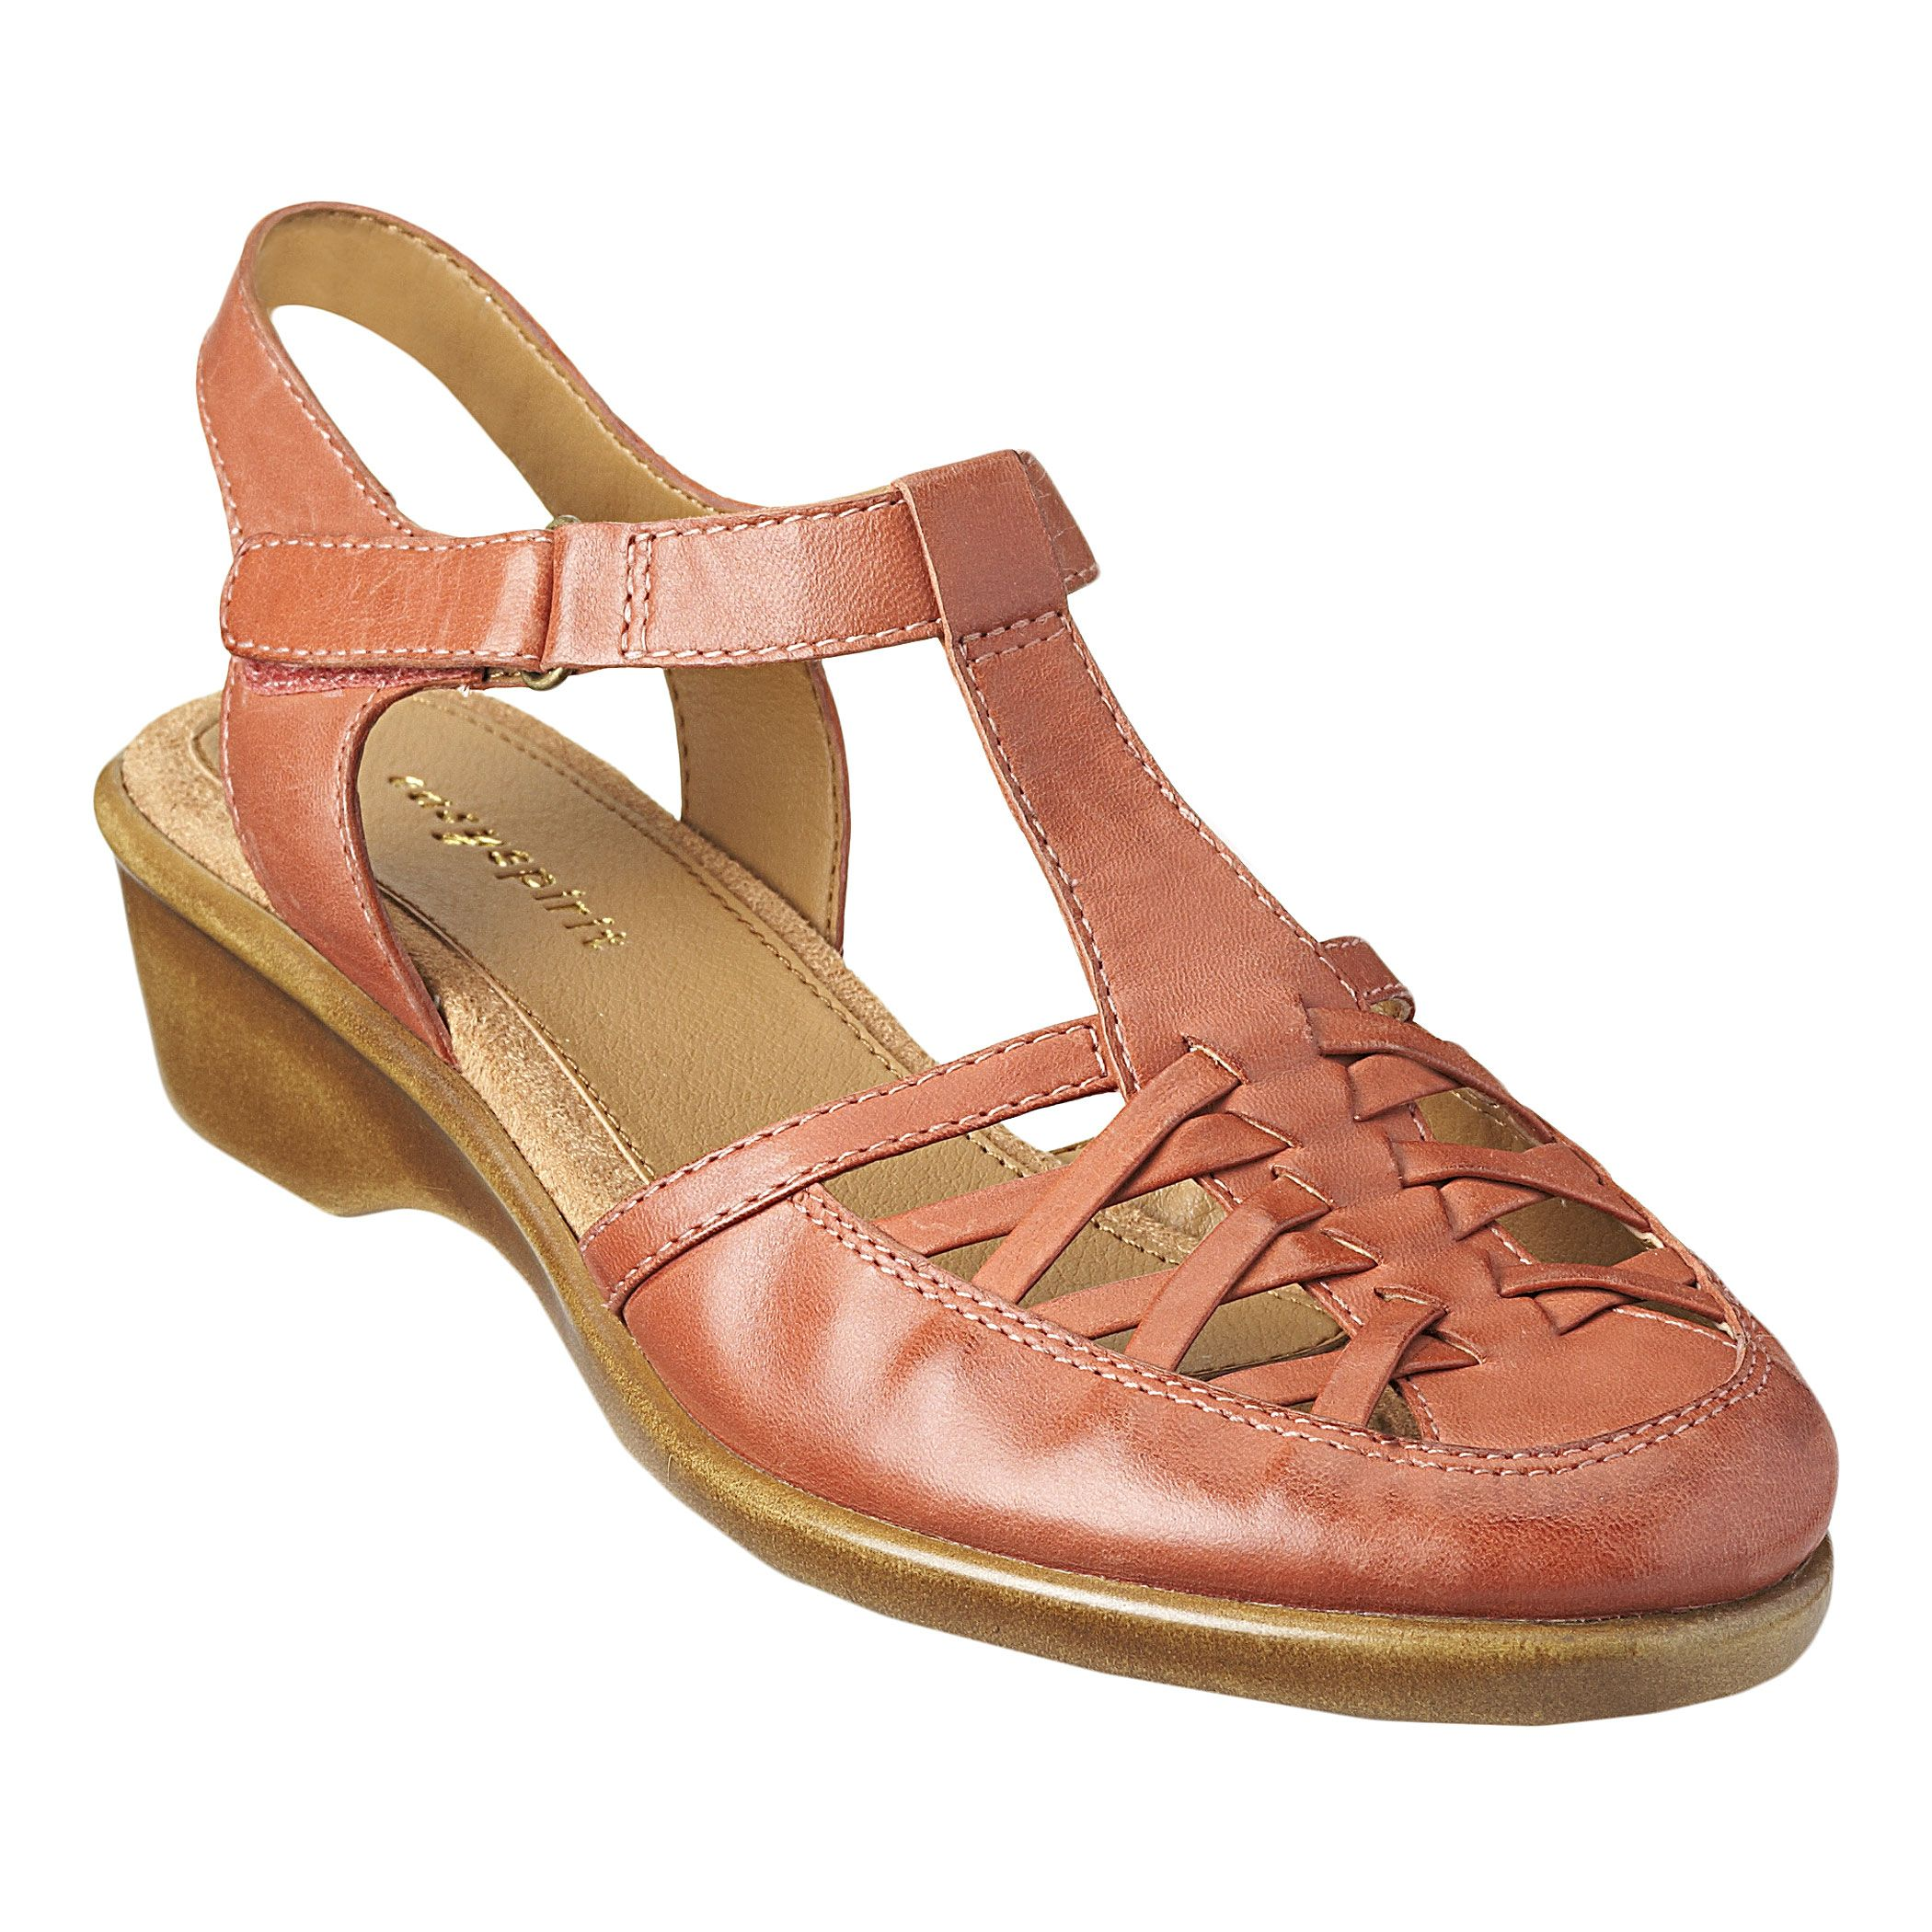 Easy Spirit: Sandals > Flat Sandals > Robinete - Comfortable shoes for women